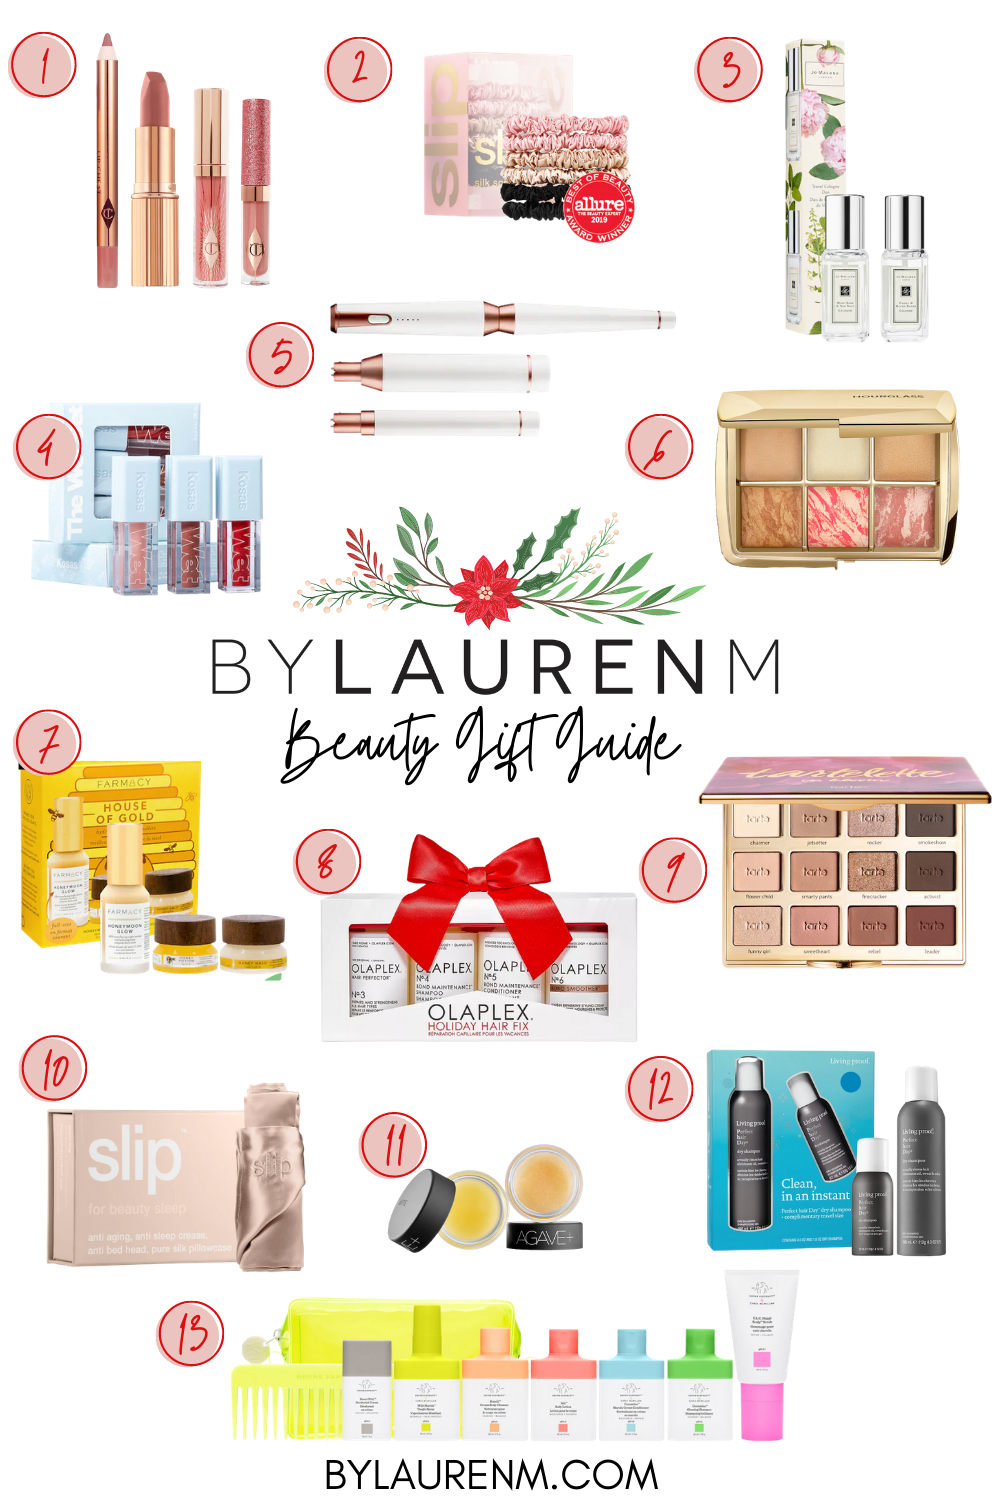 Virginia blogger, Lauren Dix, shares her beauty gift guide with over ten beauty gift ideas!